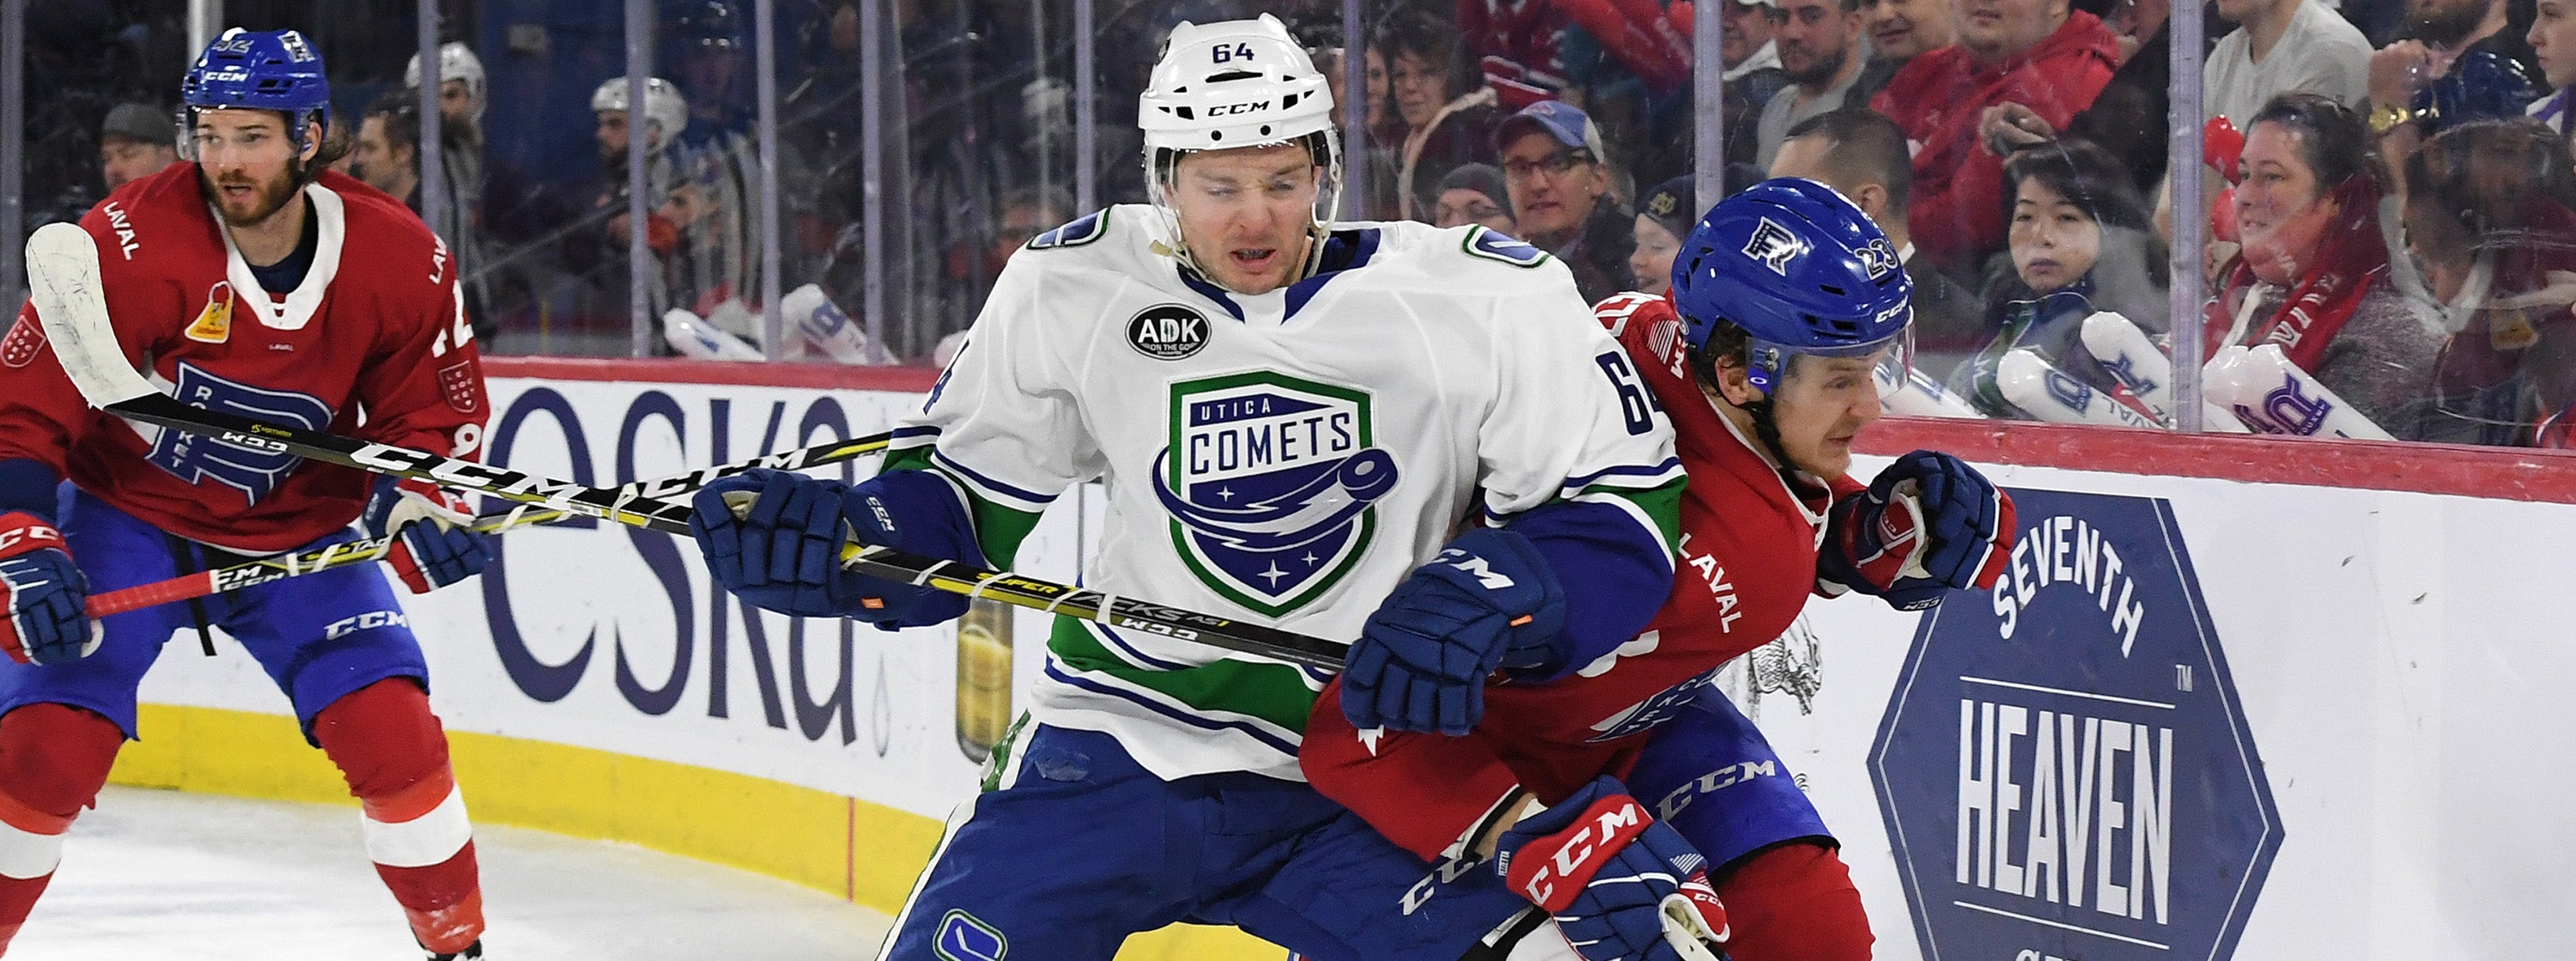 COMETS GROUNDED BY ROCKET